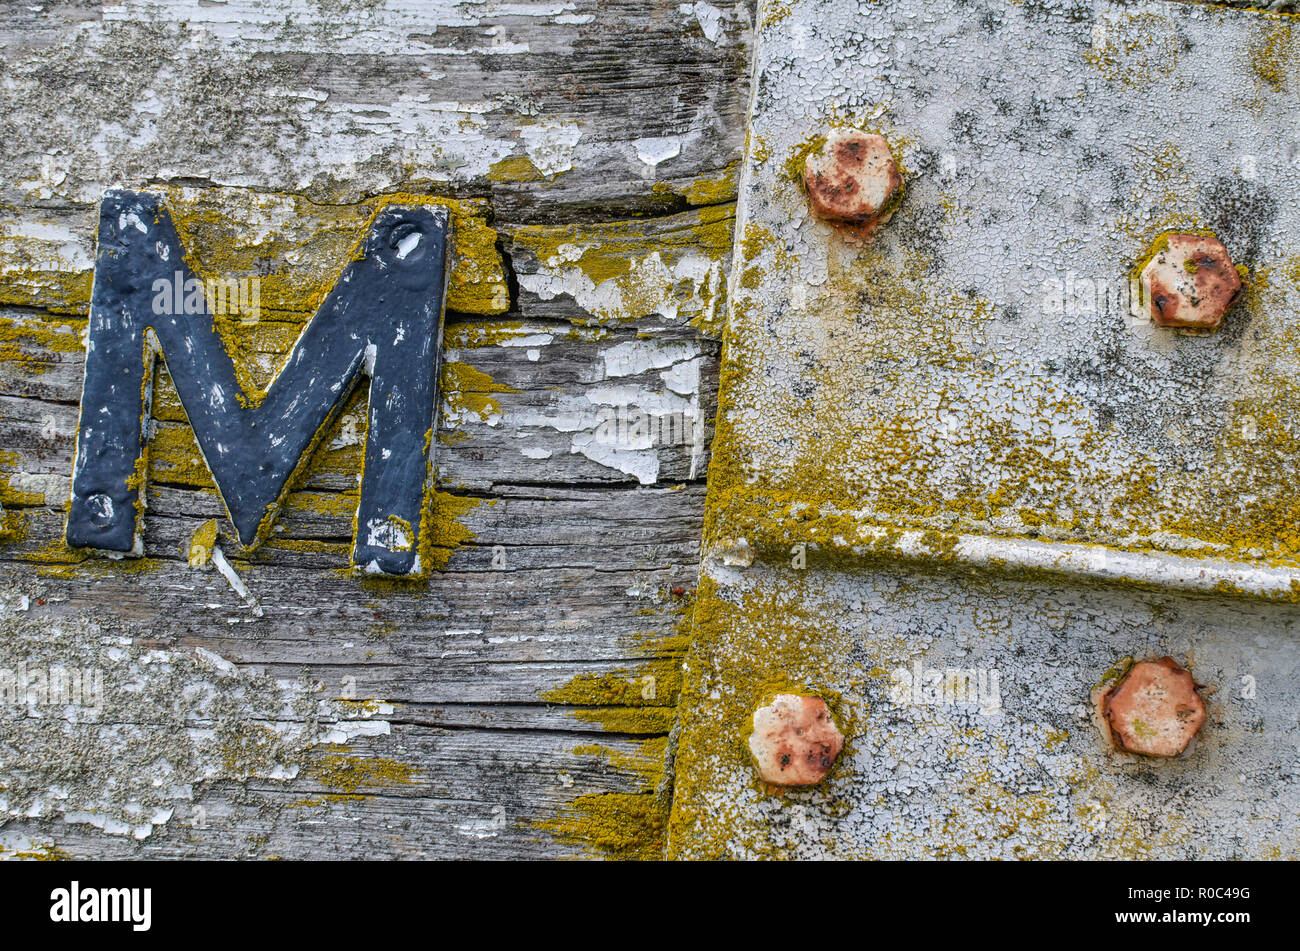 Close-up of the weathered metal and wood surfaces of a rural road sign. - Stock Image